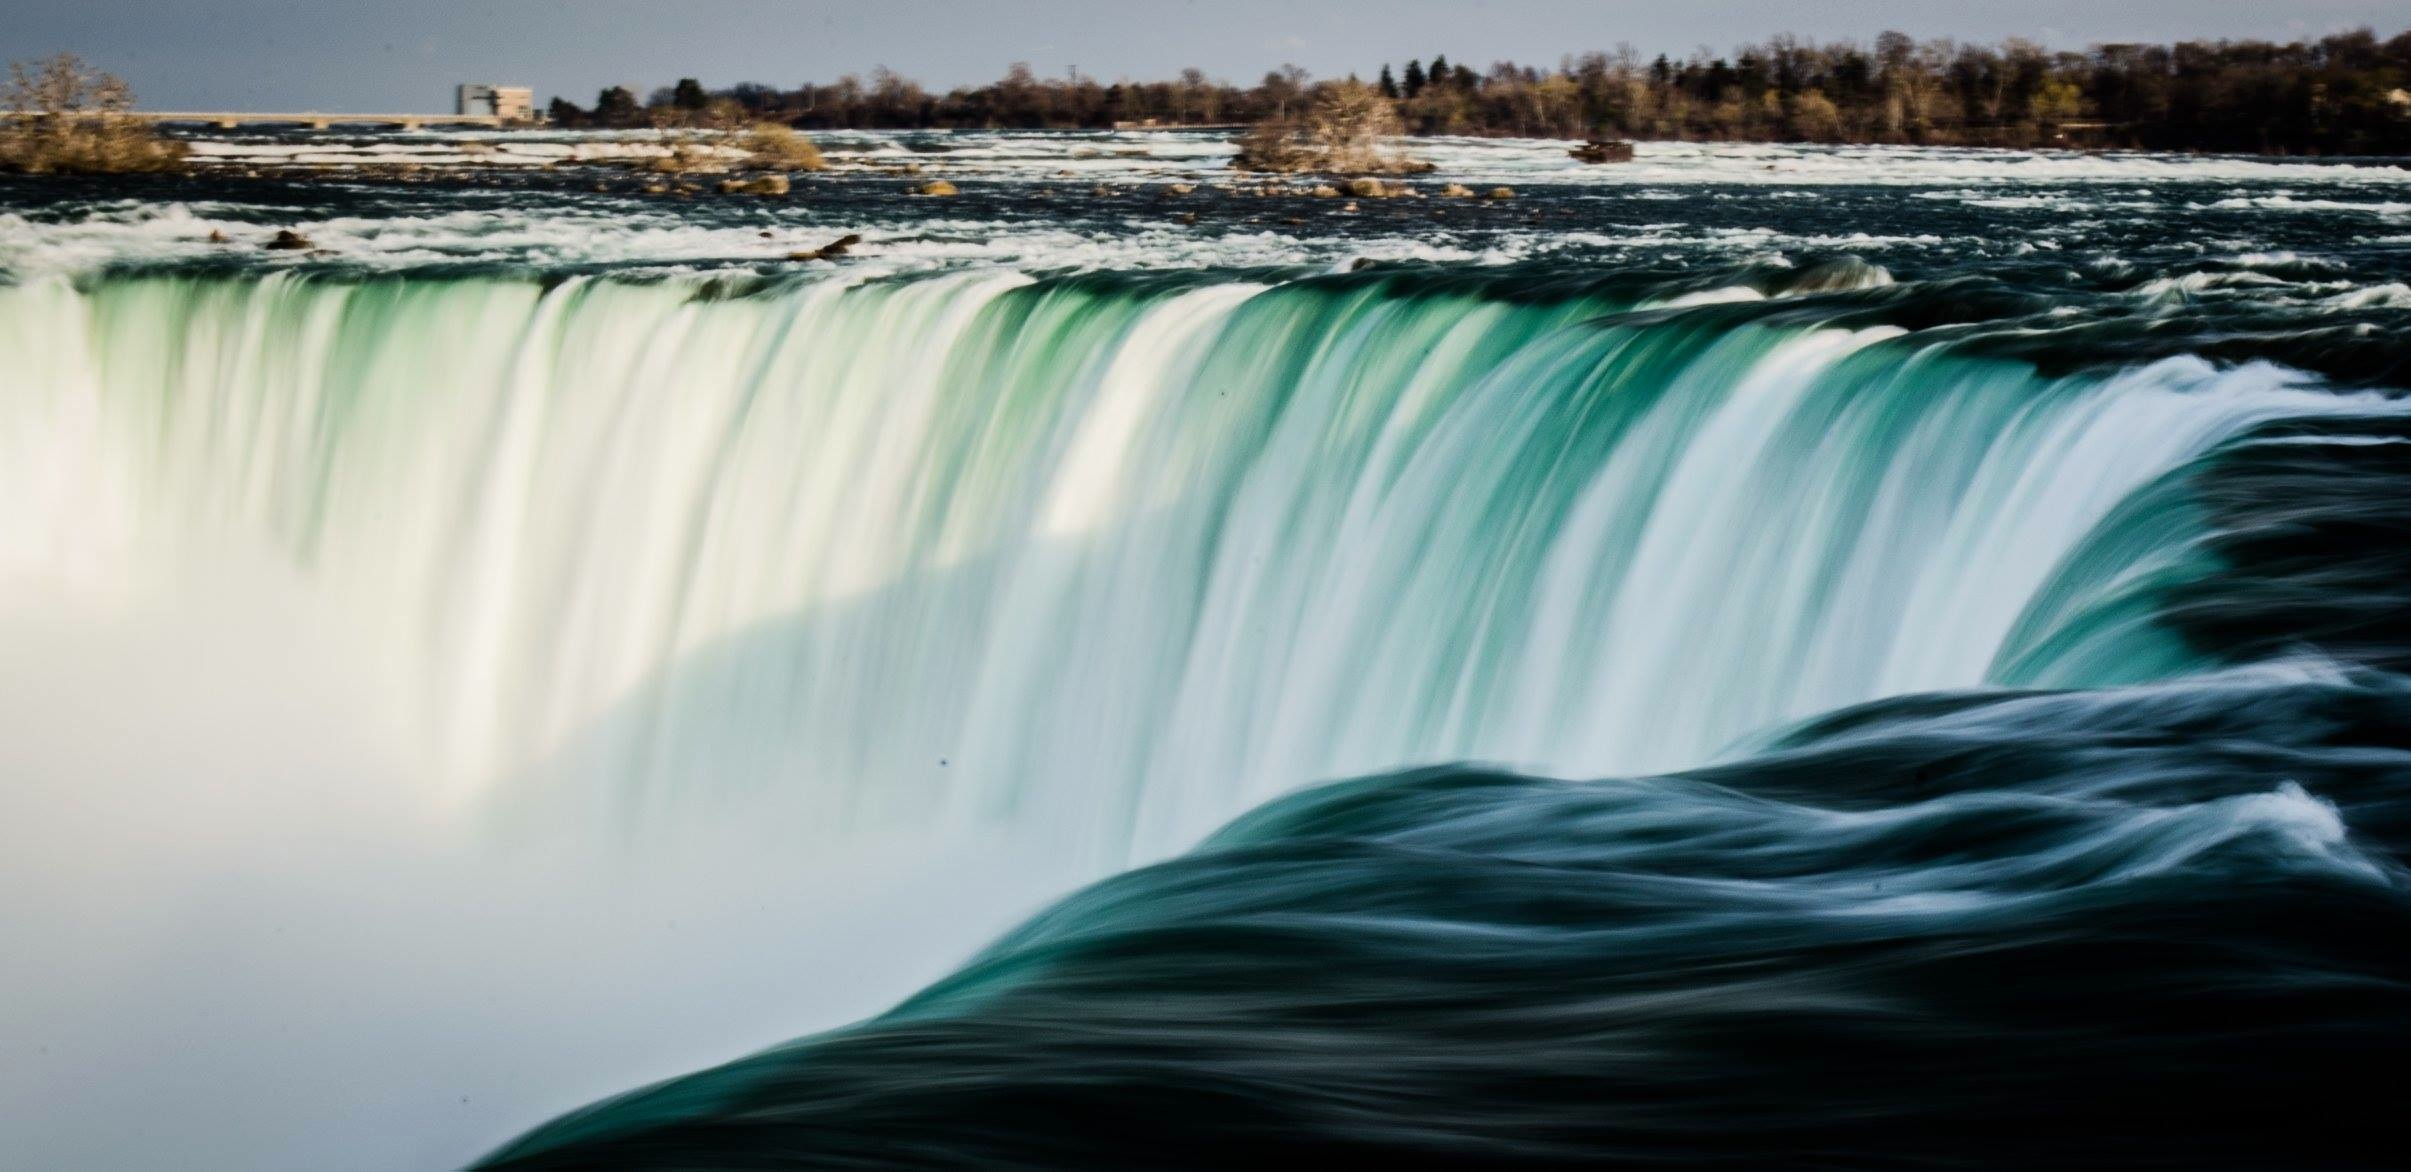 5 Easy Ways To Make Agile Work In A Waterfall Organisation